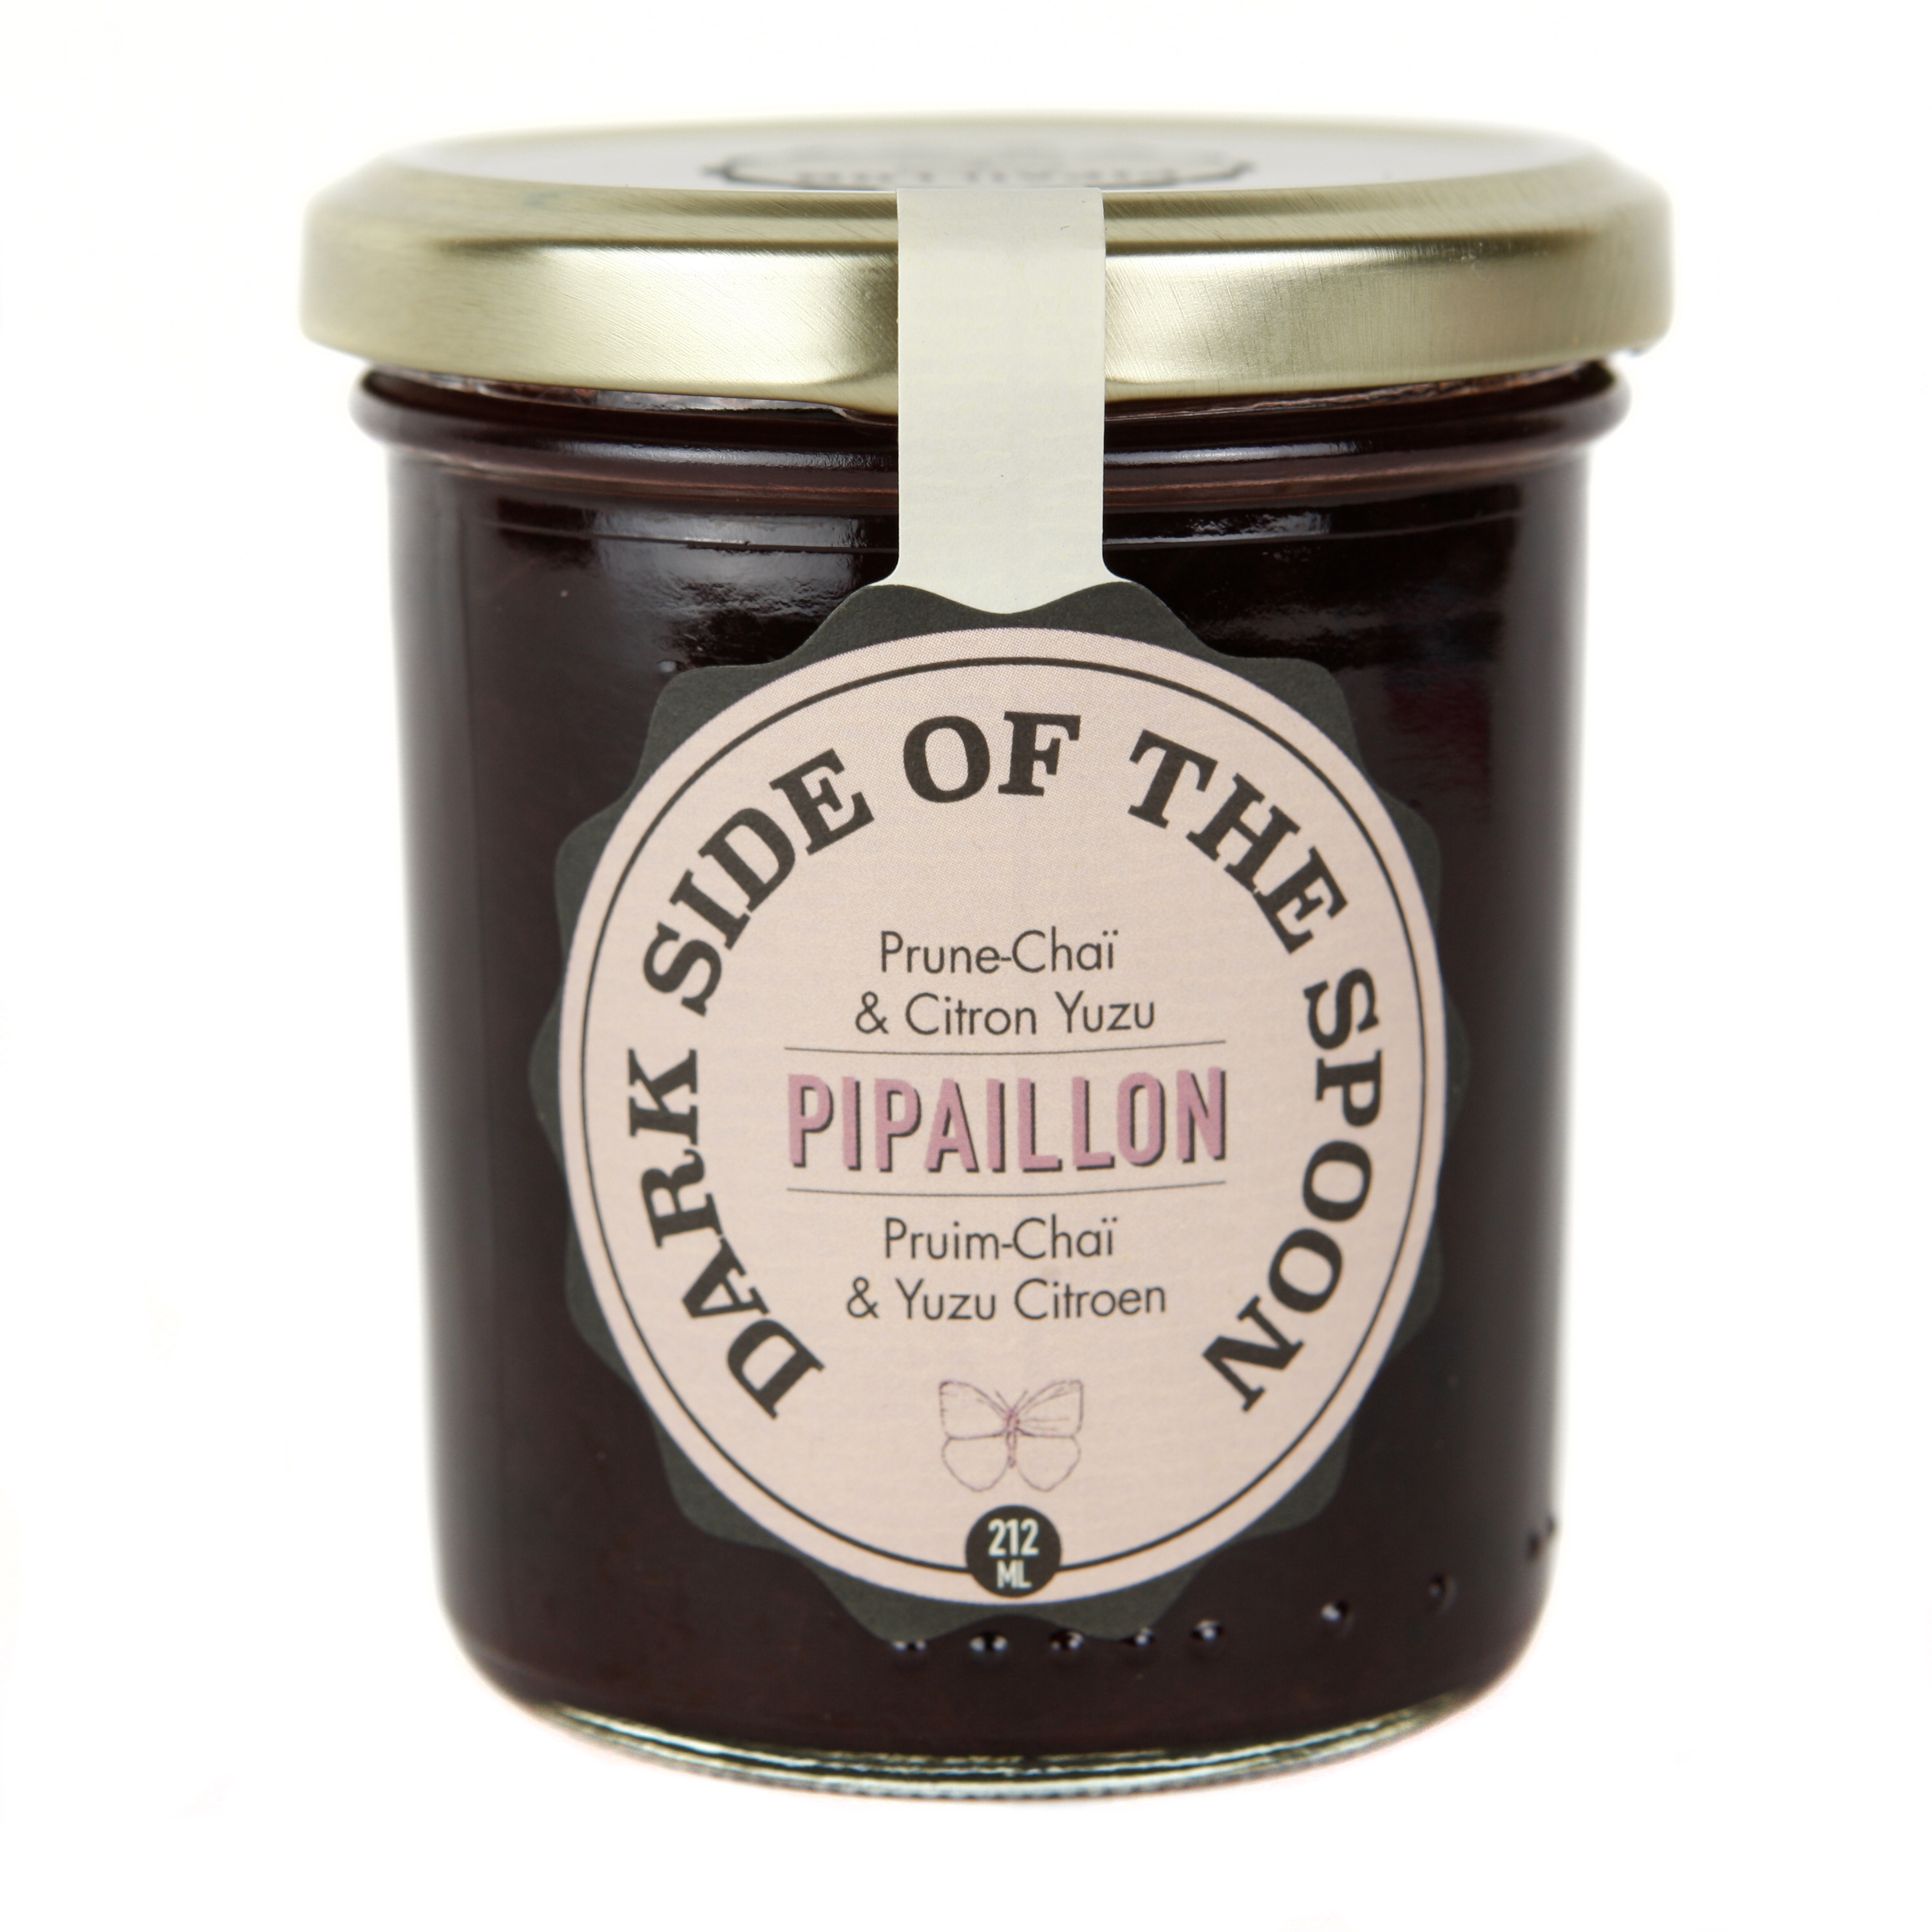 Confiture Dark Side of The Spoon - Prune, Chaï et Yuzu BIO, Pipaillon (212 ml)